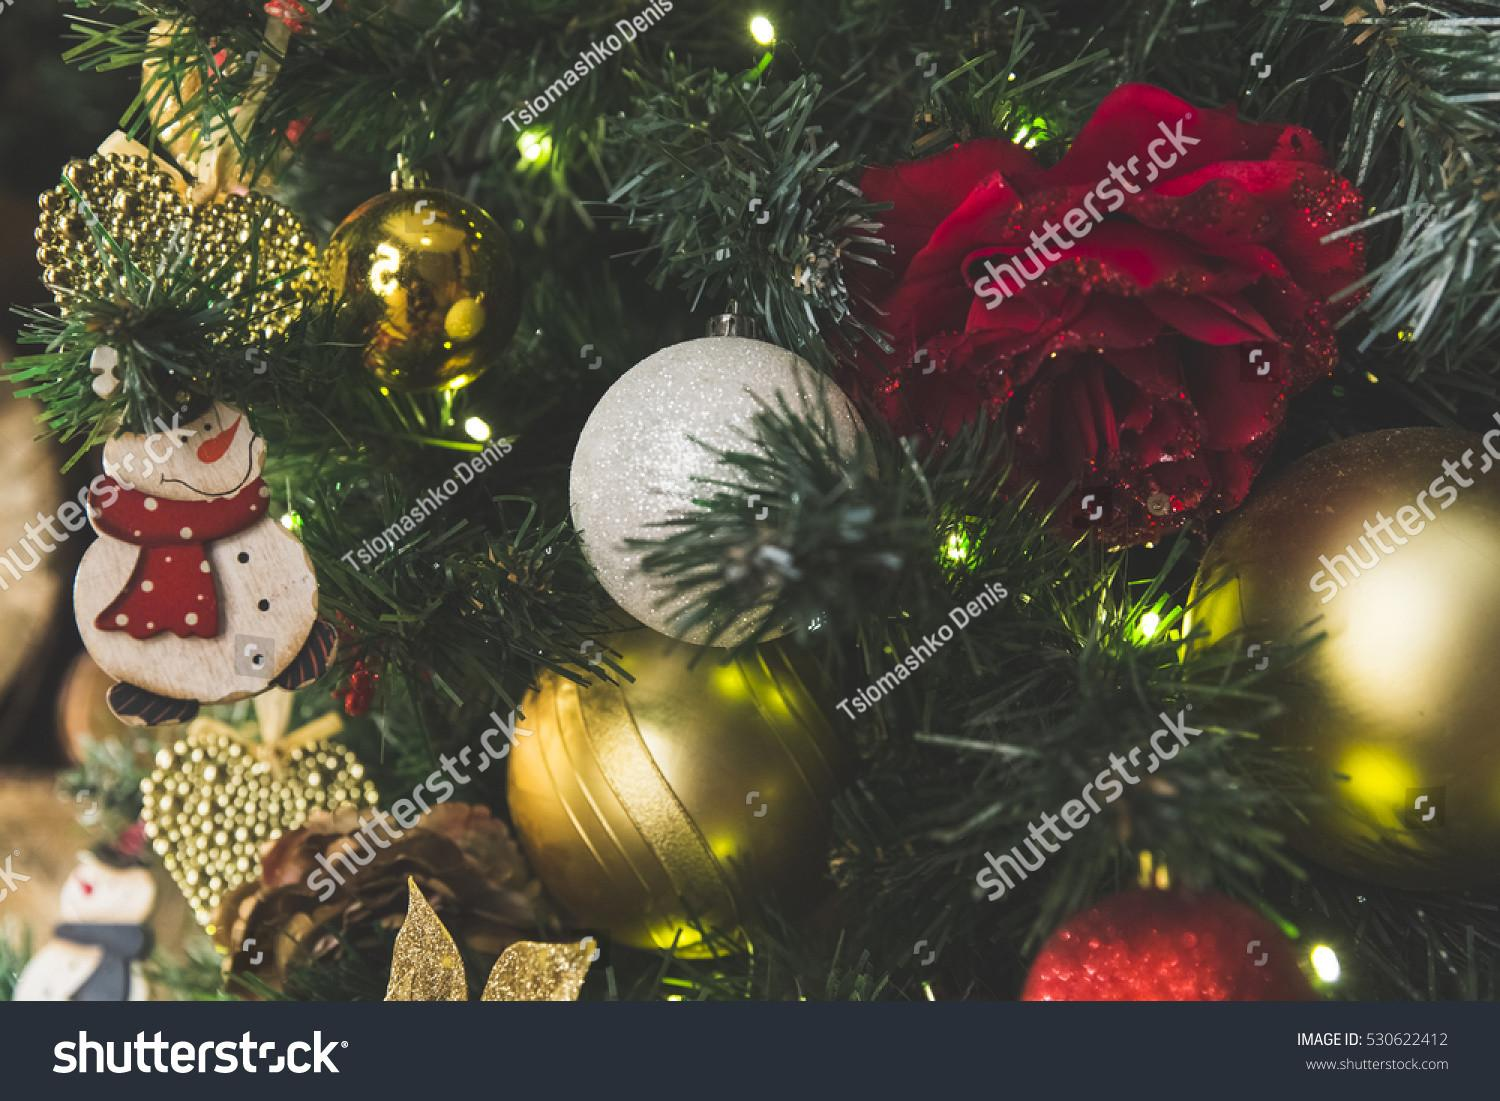 Festive Christmas Tree Decoration